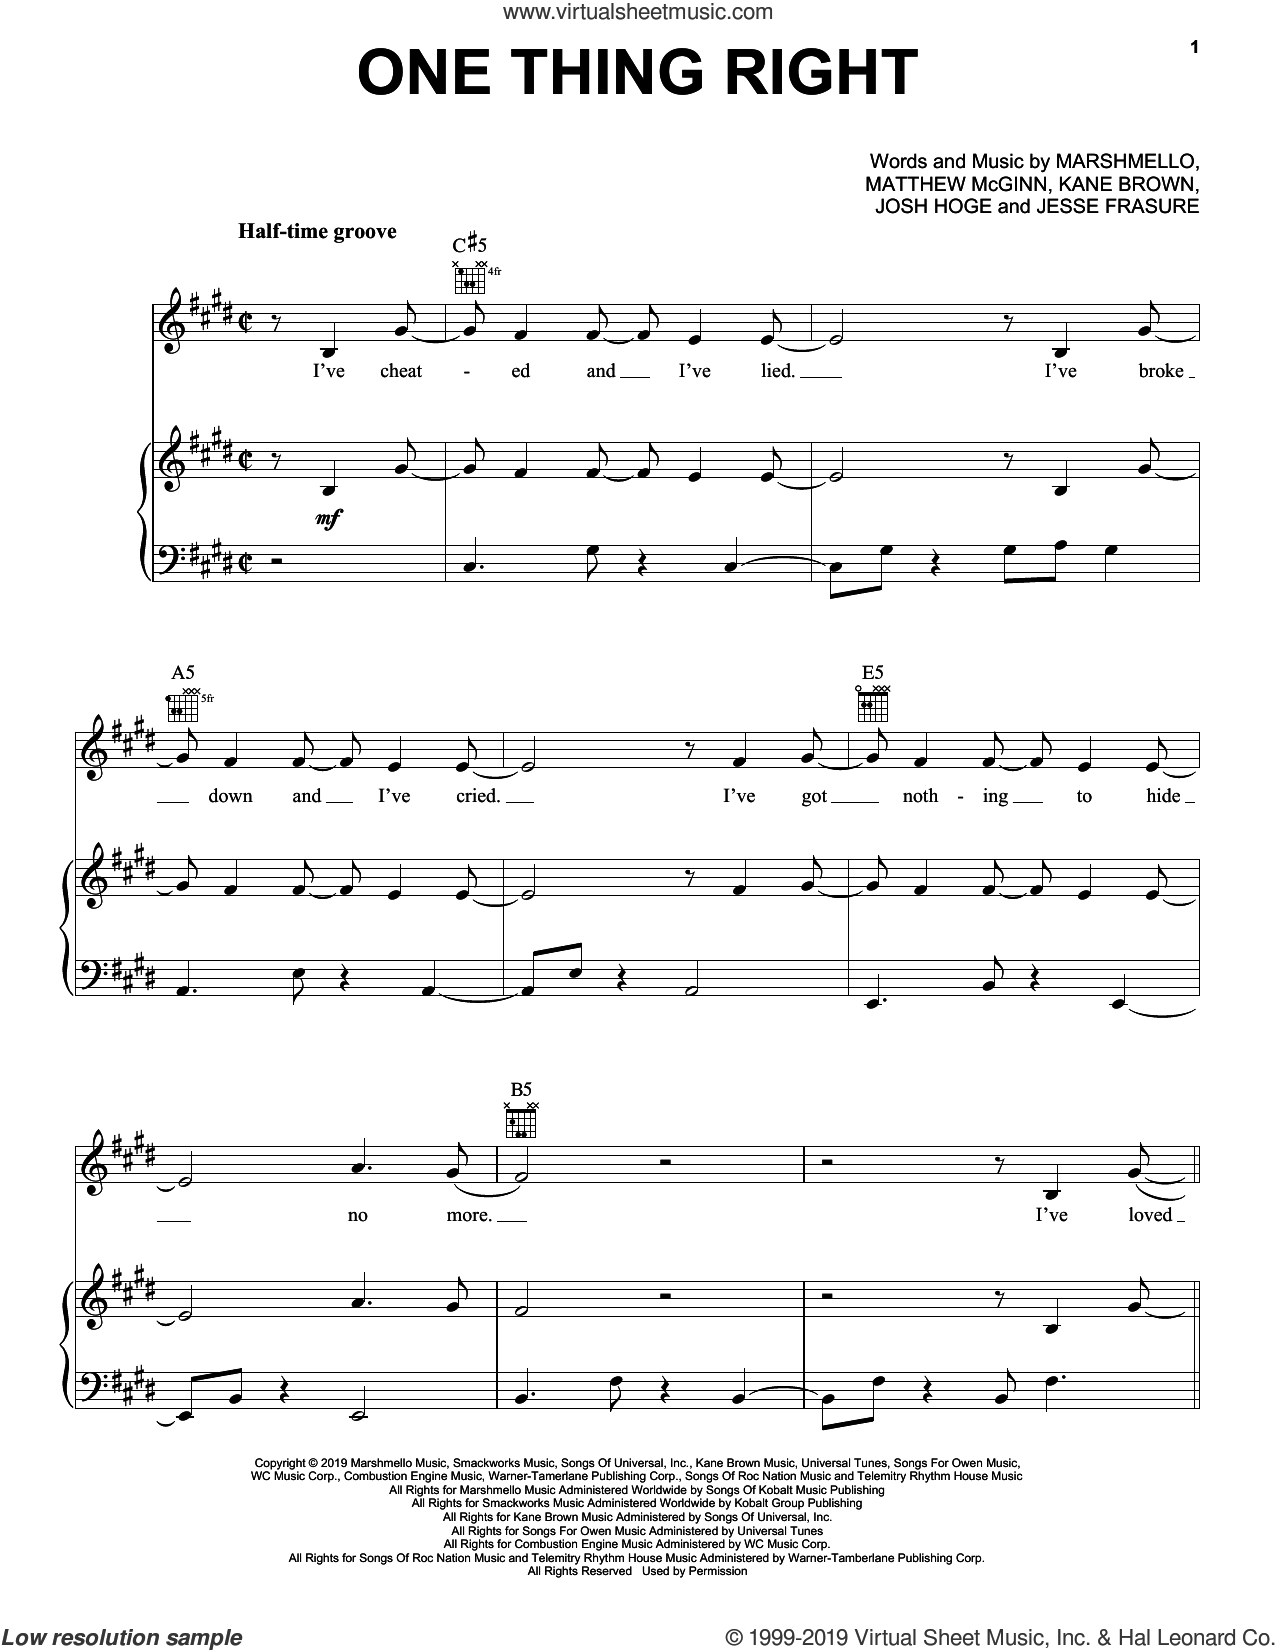 One Thing Right sheet music for voice, piano or guitar by Marshmello & Kane Brown, Jesse Frasure, Josh Hoge, Kane Brown, Marshmello and Matthew McGinn, intermediate skill level